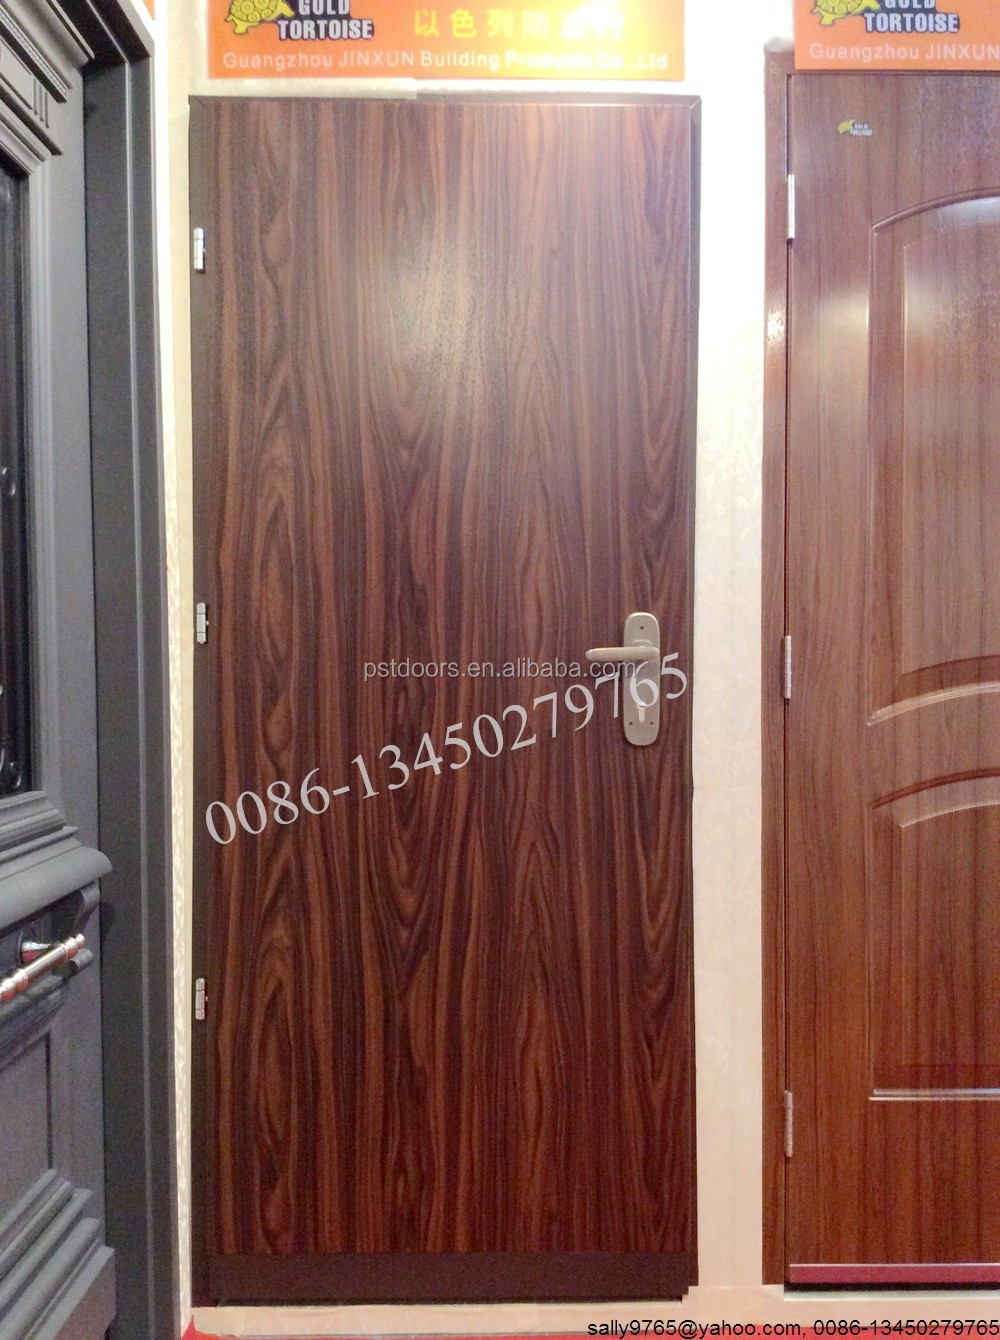 Unique Home Designs Security Doors Unique Home Designs Security Doors  Suppliers And Manufacturers At Alibaba Comunique